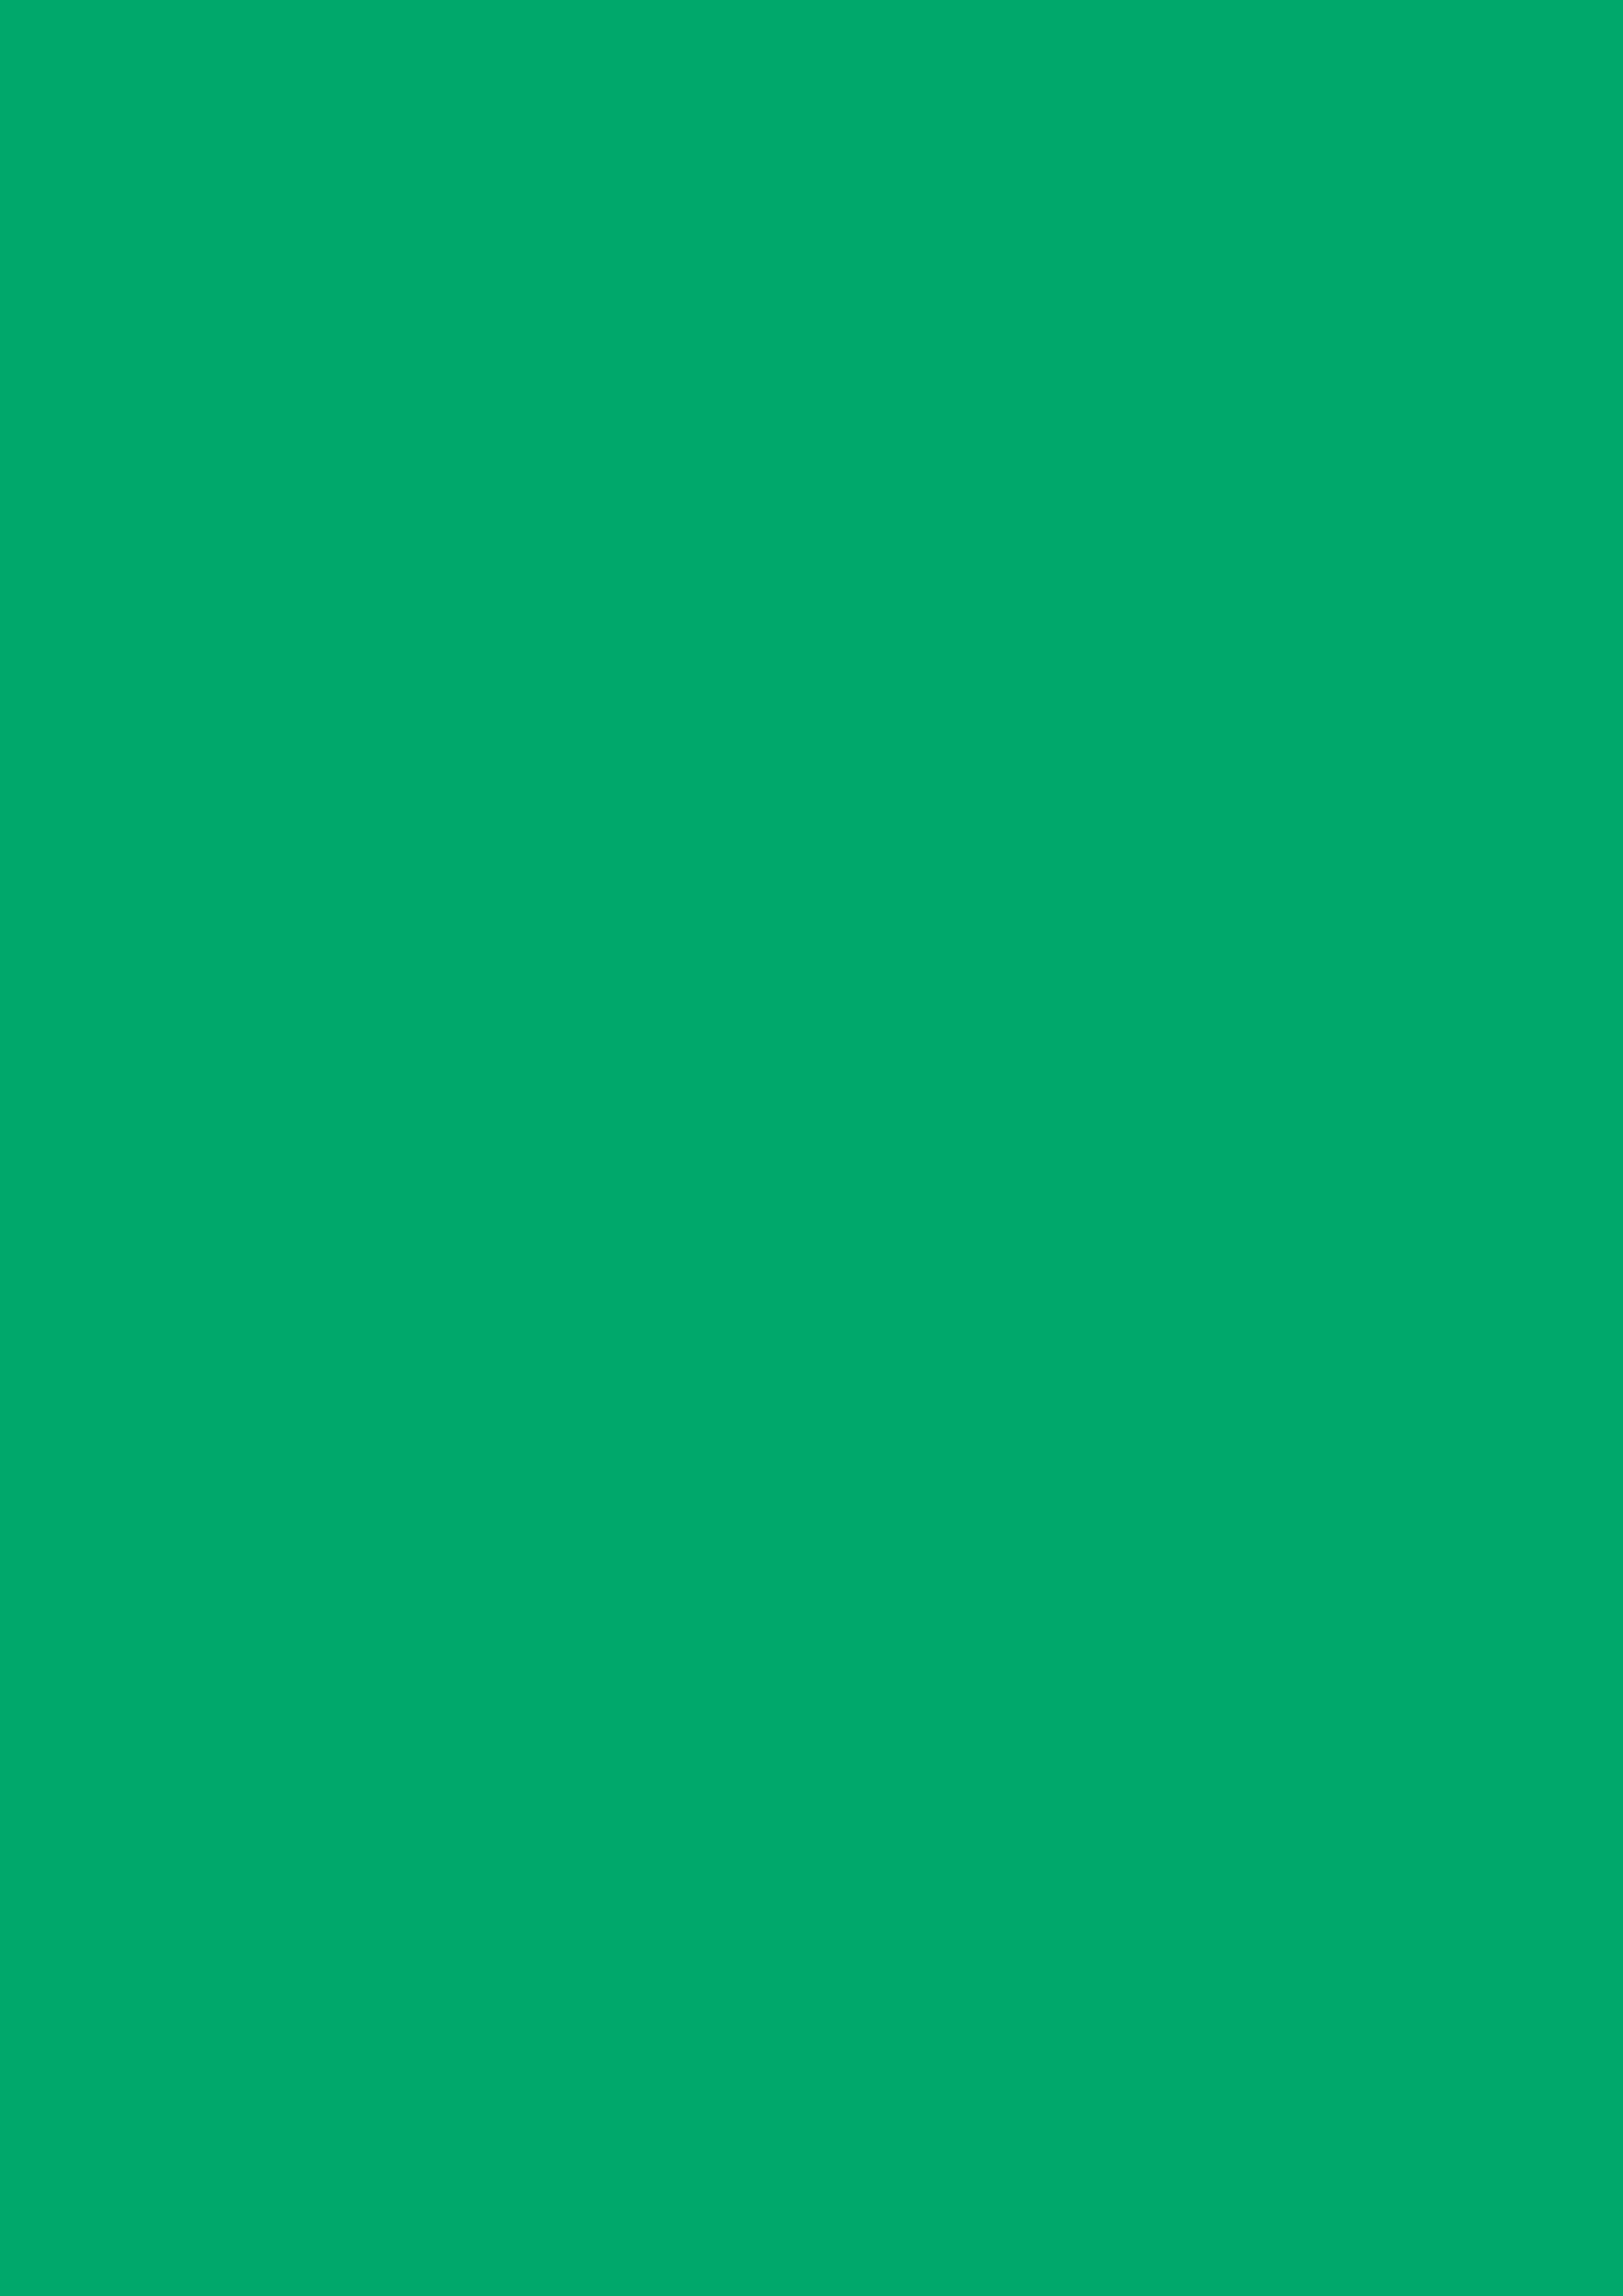 2480x3508 Jade Solid Color Background